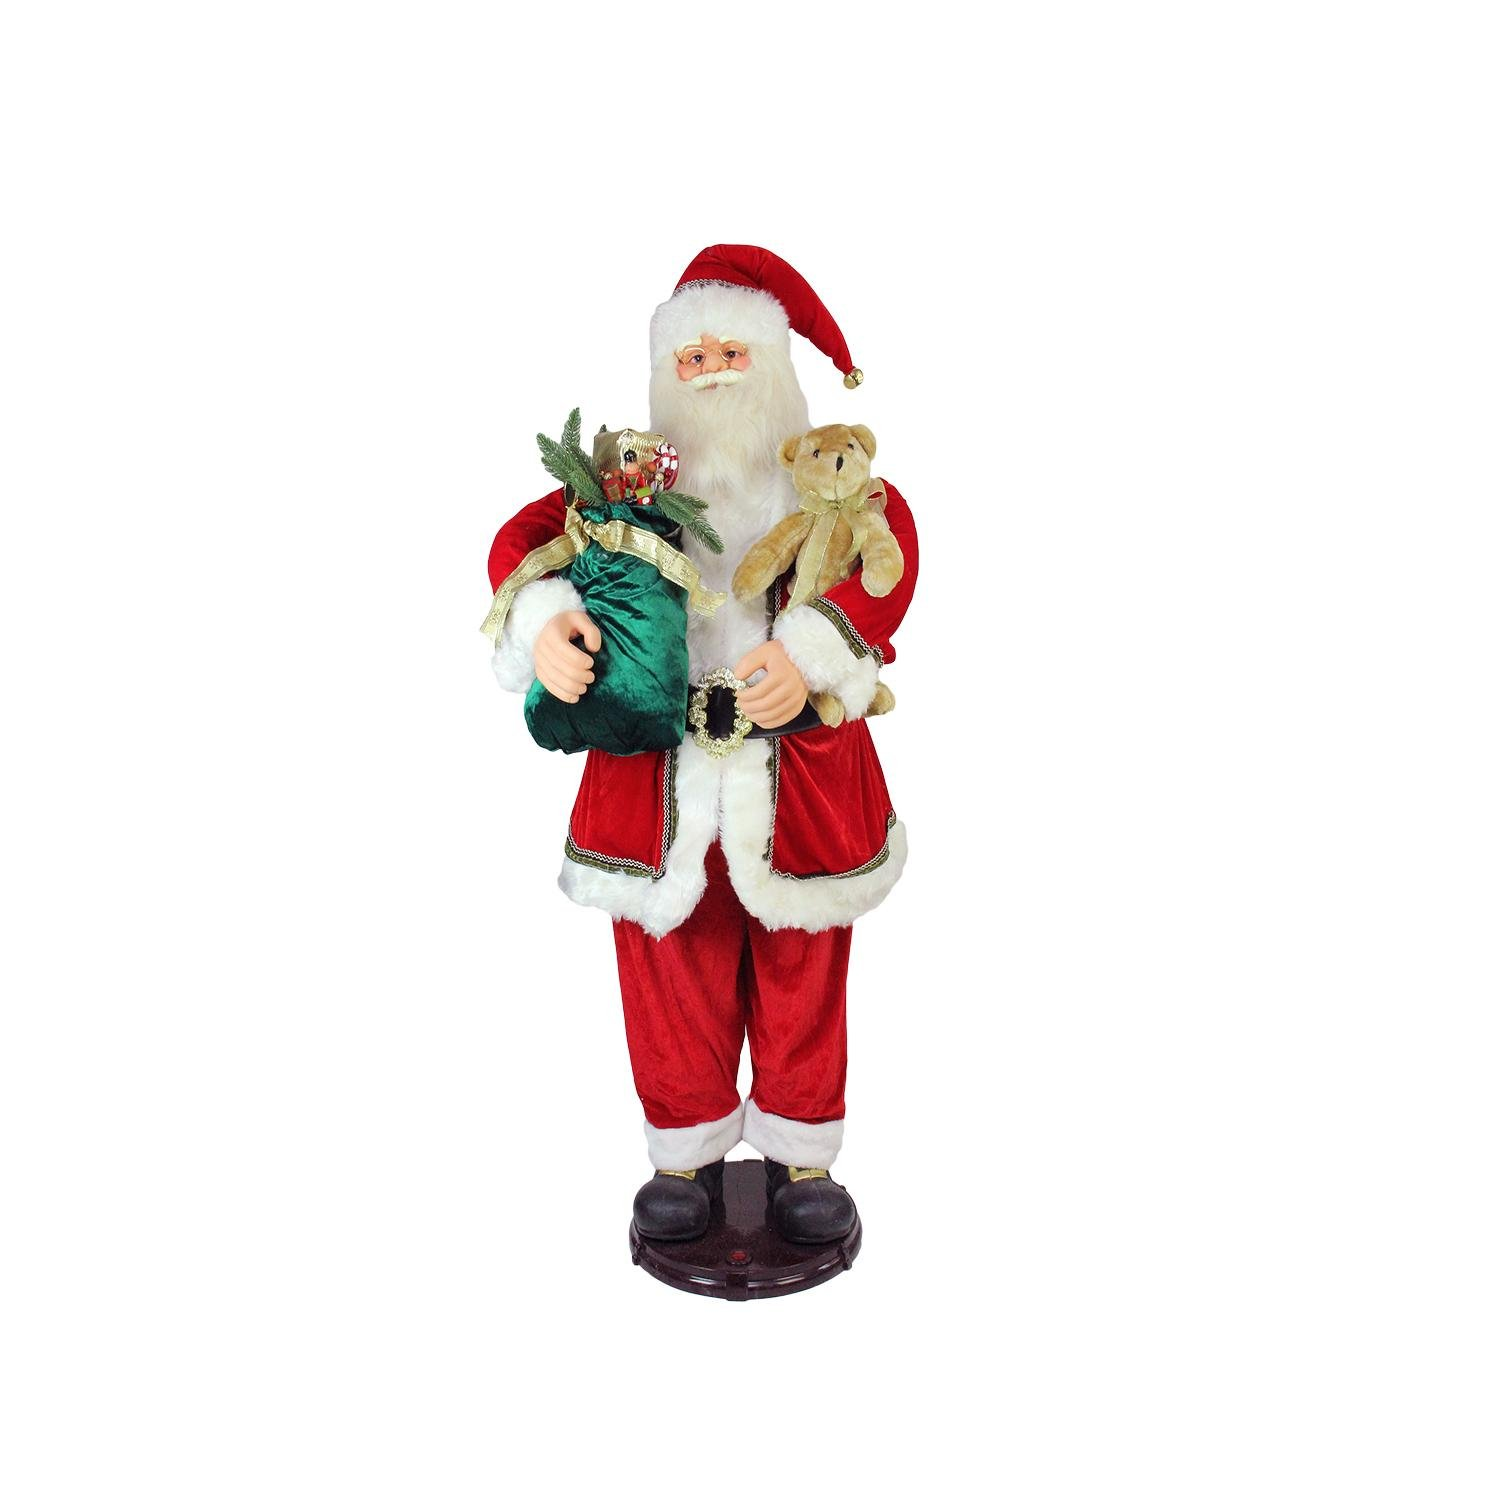 Northlight 5' Deluxe Traditonal Animated and Musical Dancing Santa Claus Christmas Figure by Northlight